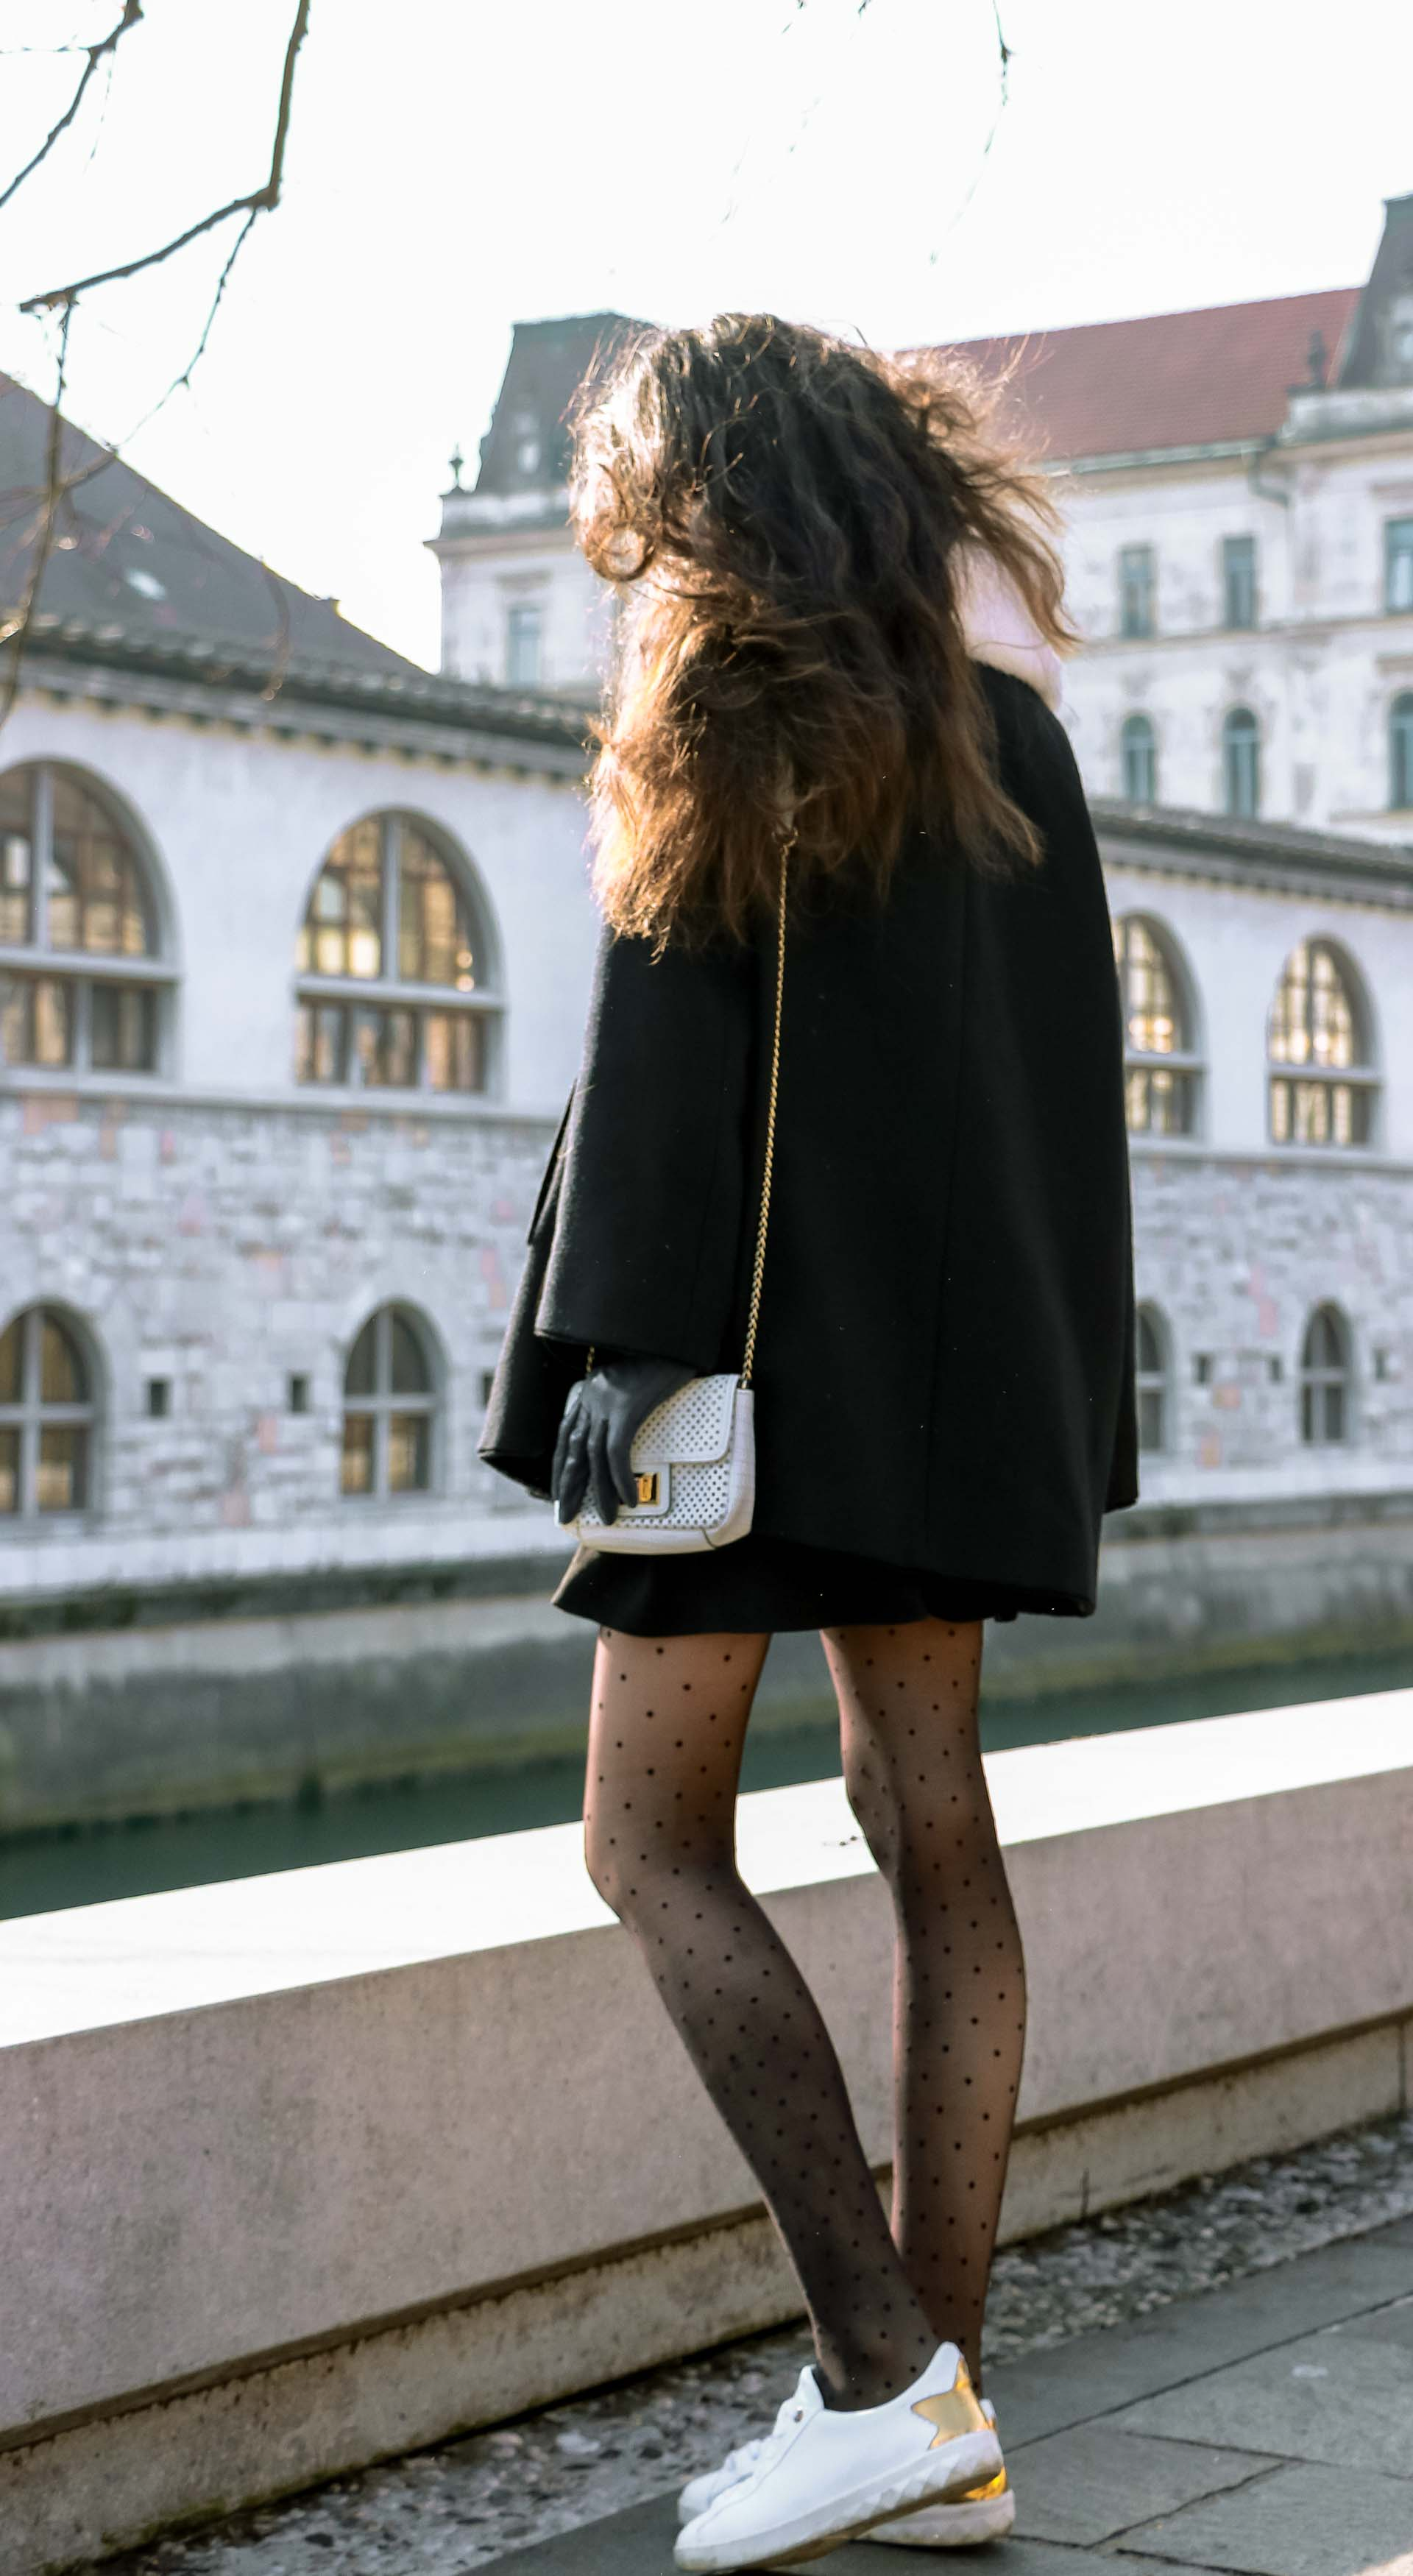 Fashion Blogger Veronika Lipar of Brunette from Wall Street wearing black Escada cape, black mini skirt and white sneakers from Diesel with black polka dot tights and white shoulder chain bag and blue leather gloves